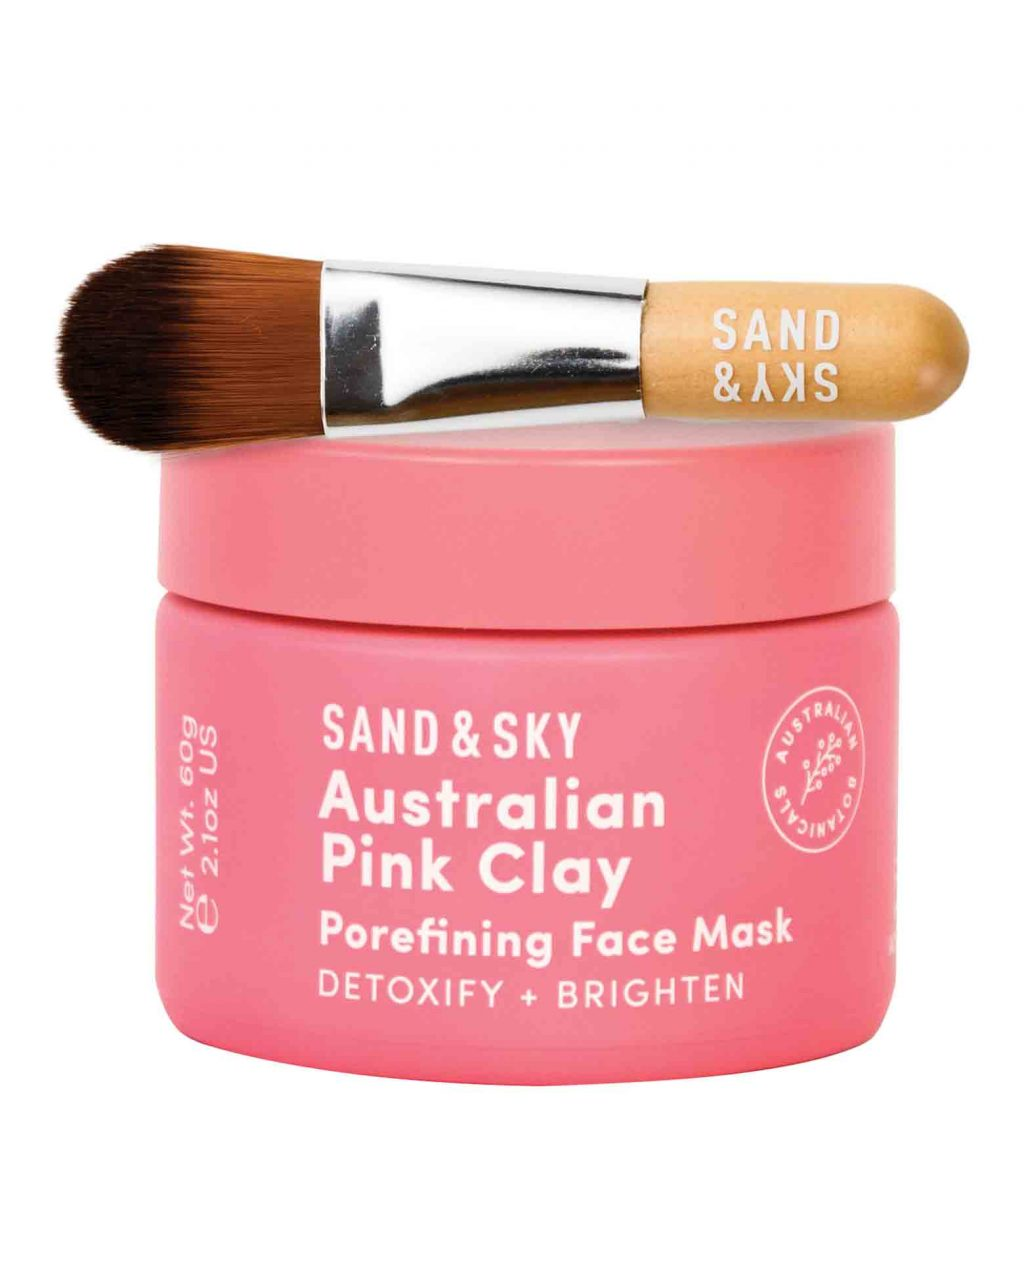 14 Aussie Beauty Brands You Need in Your Life Circa Now